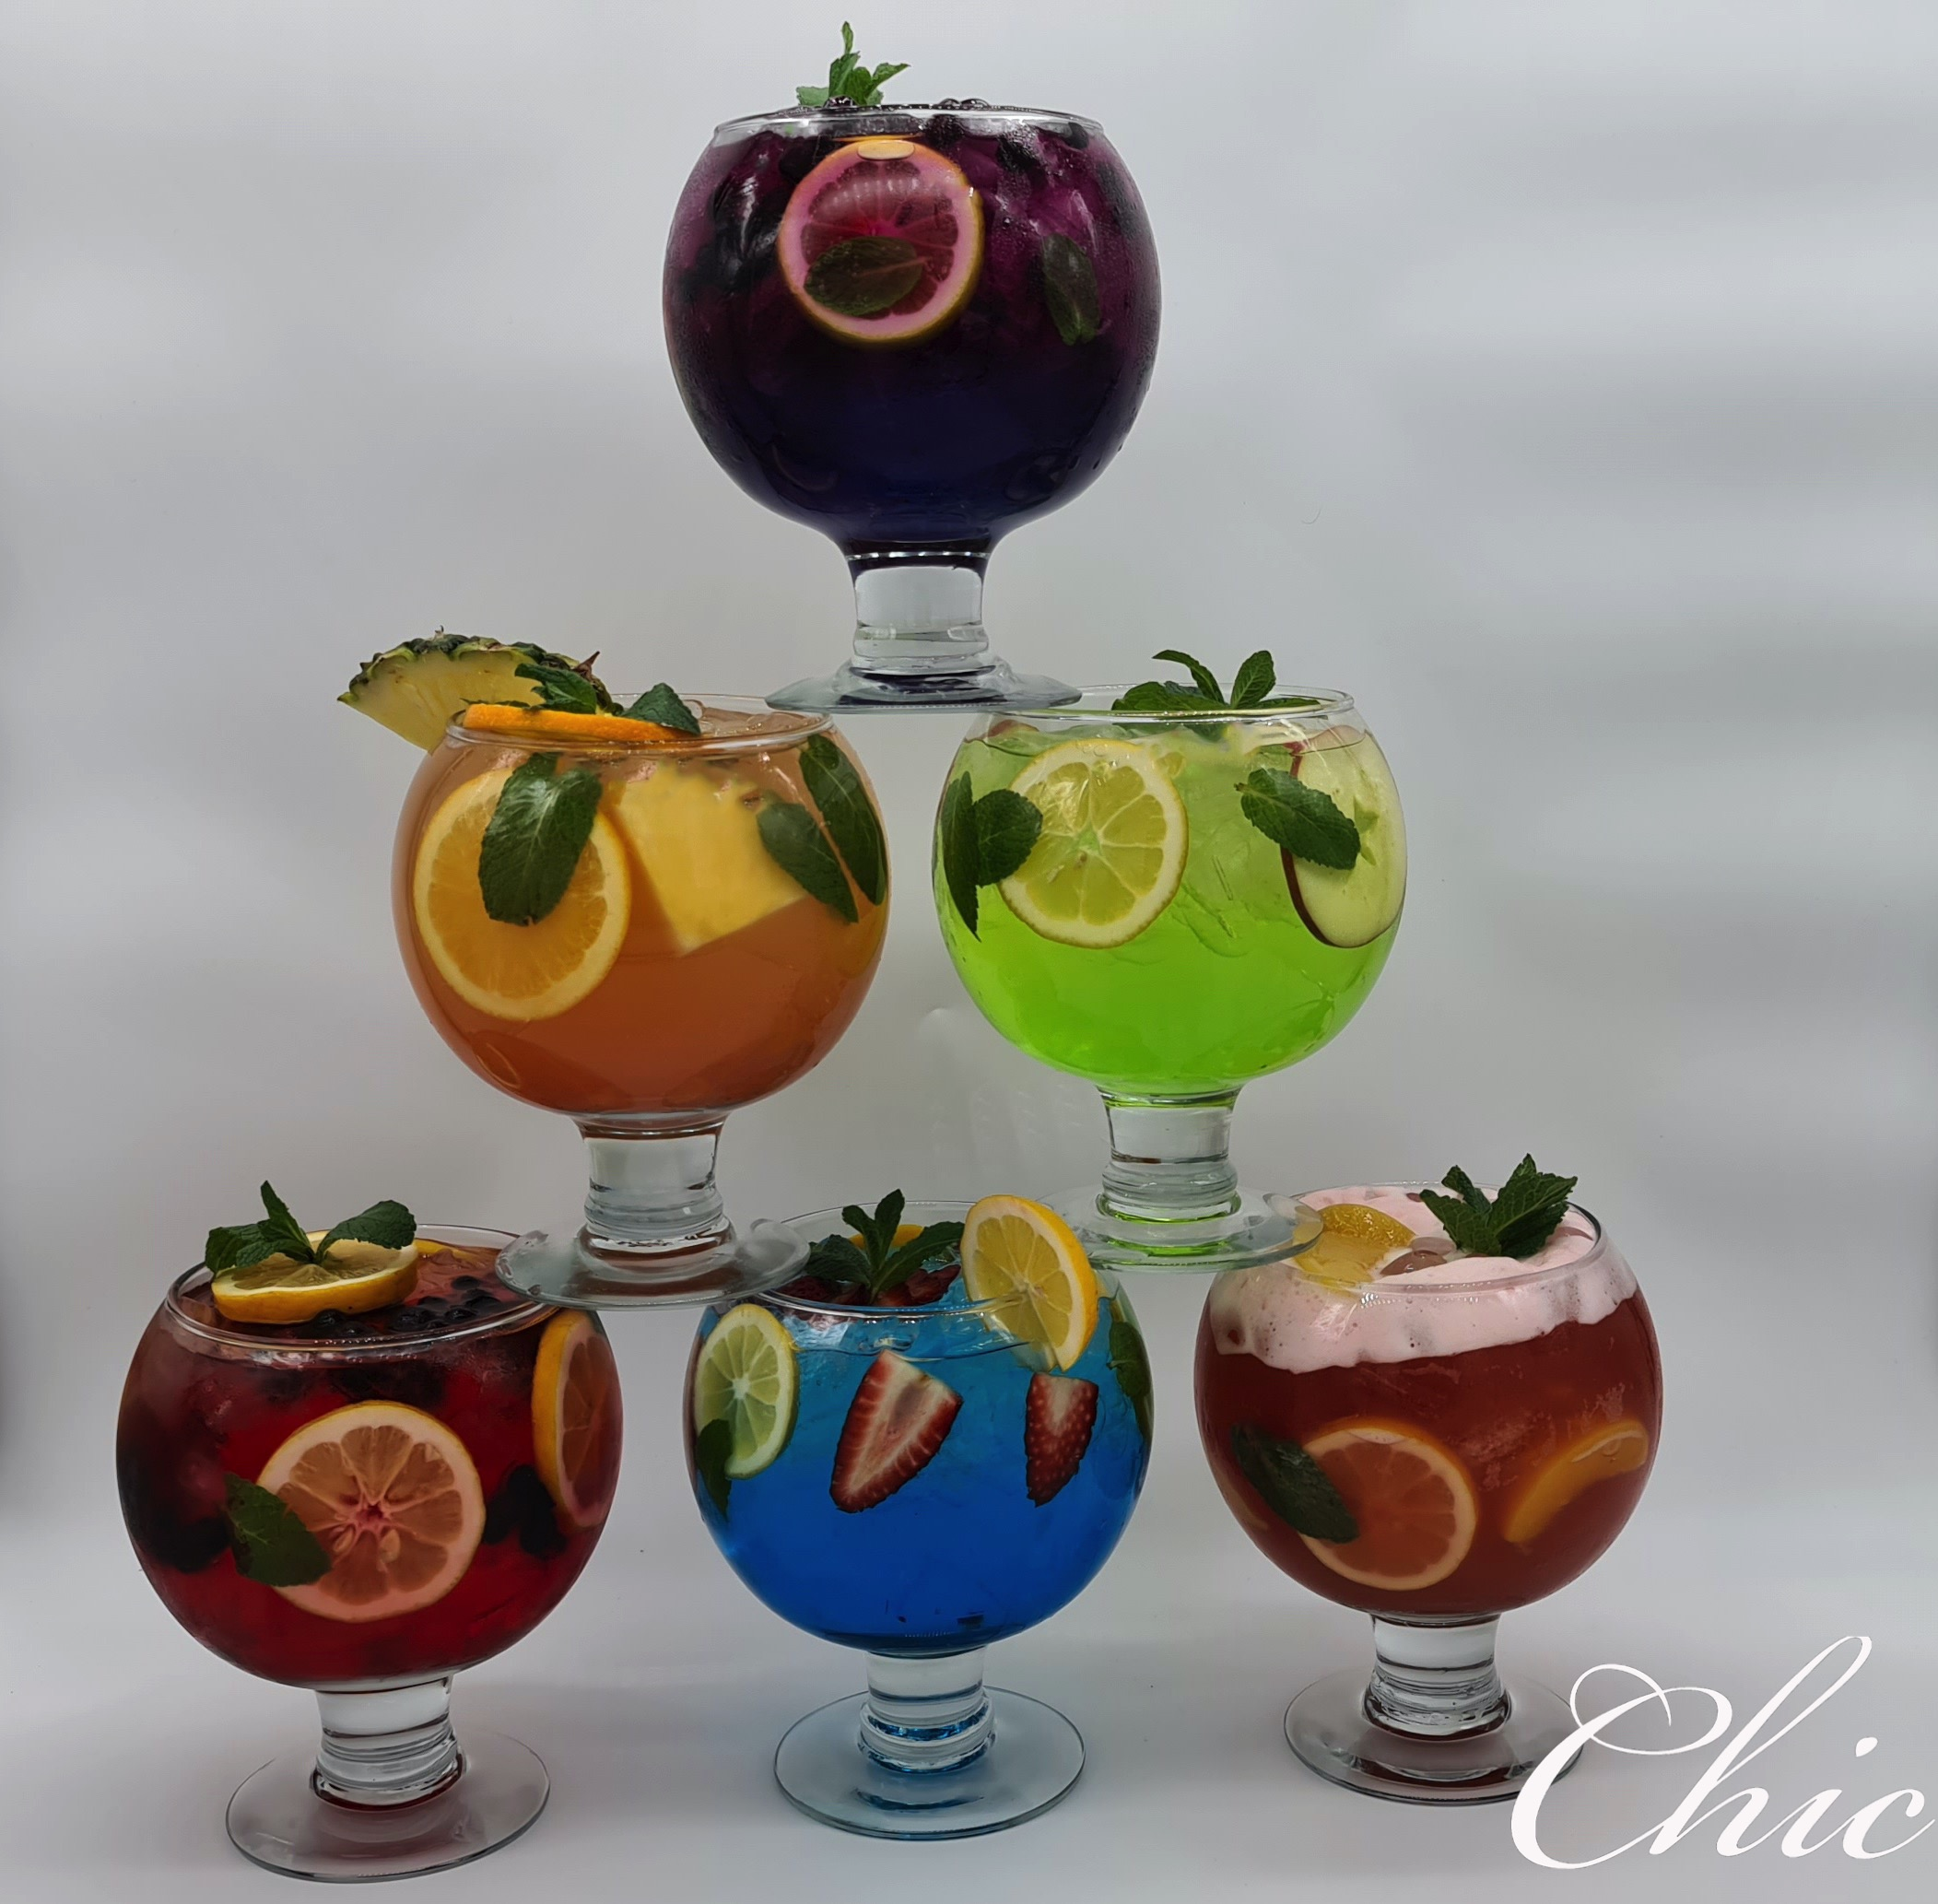 Chic's Fishbowl Range